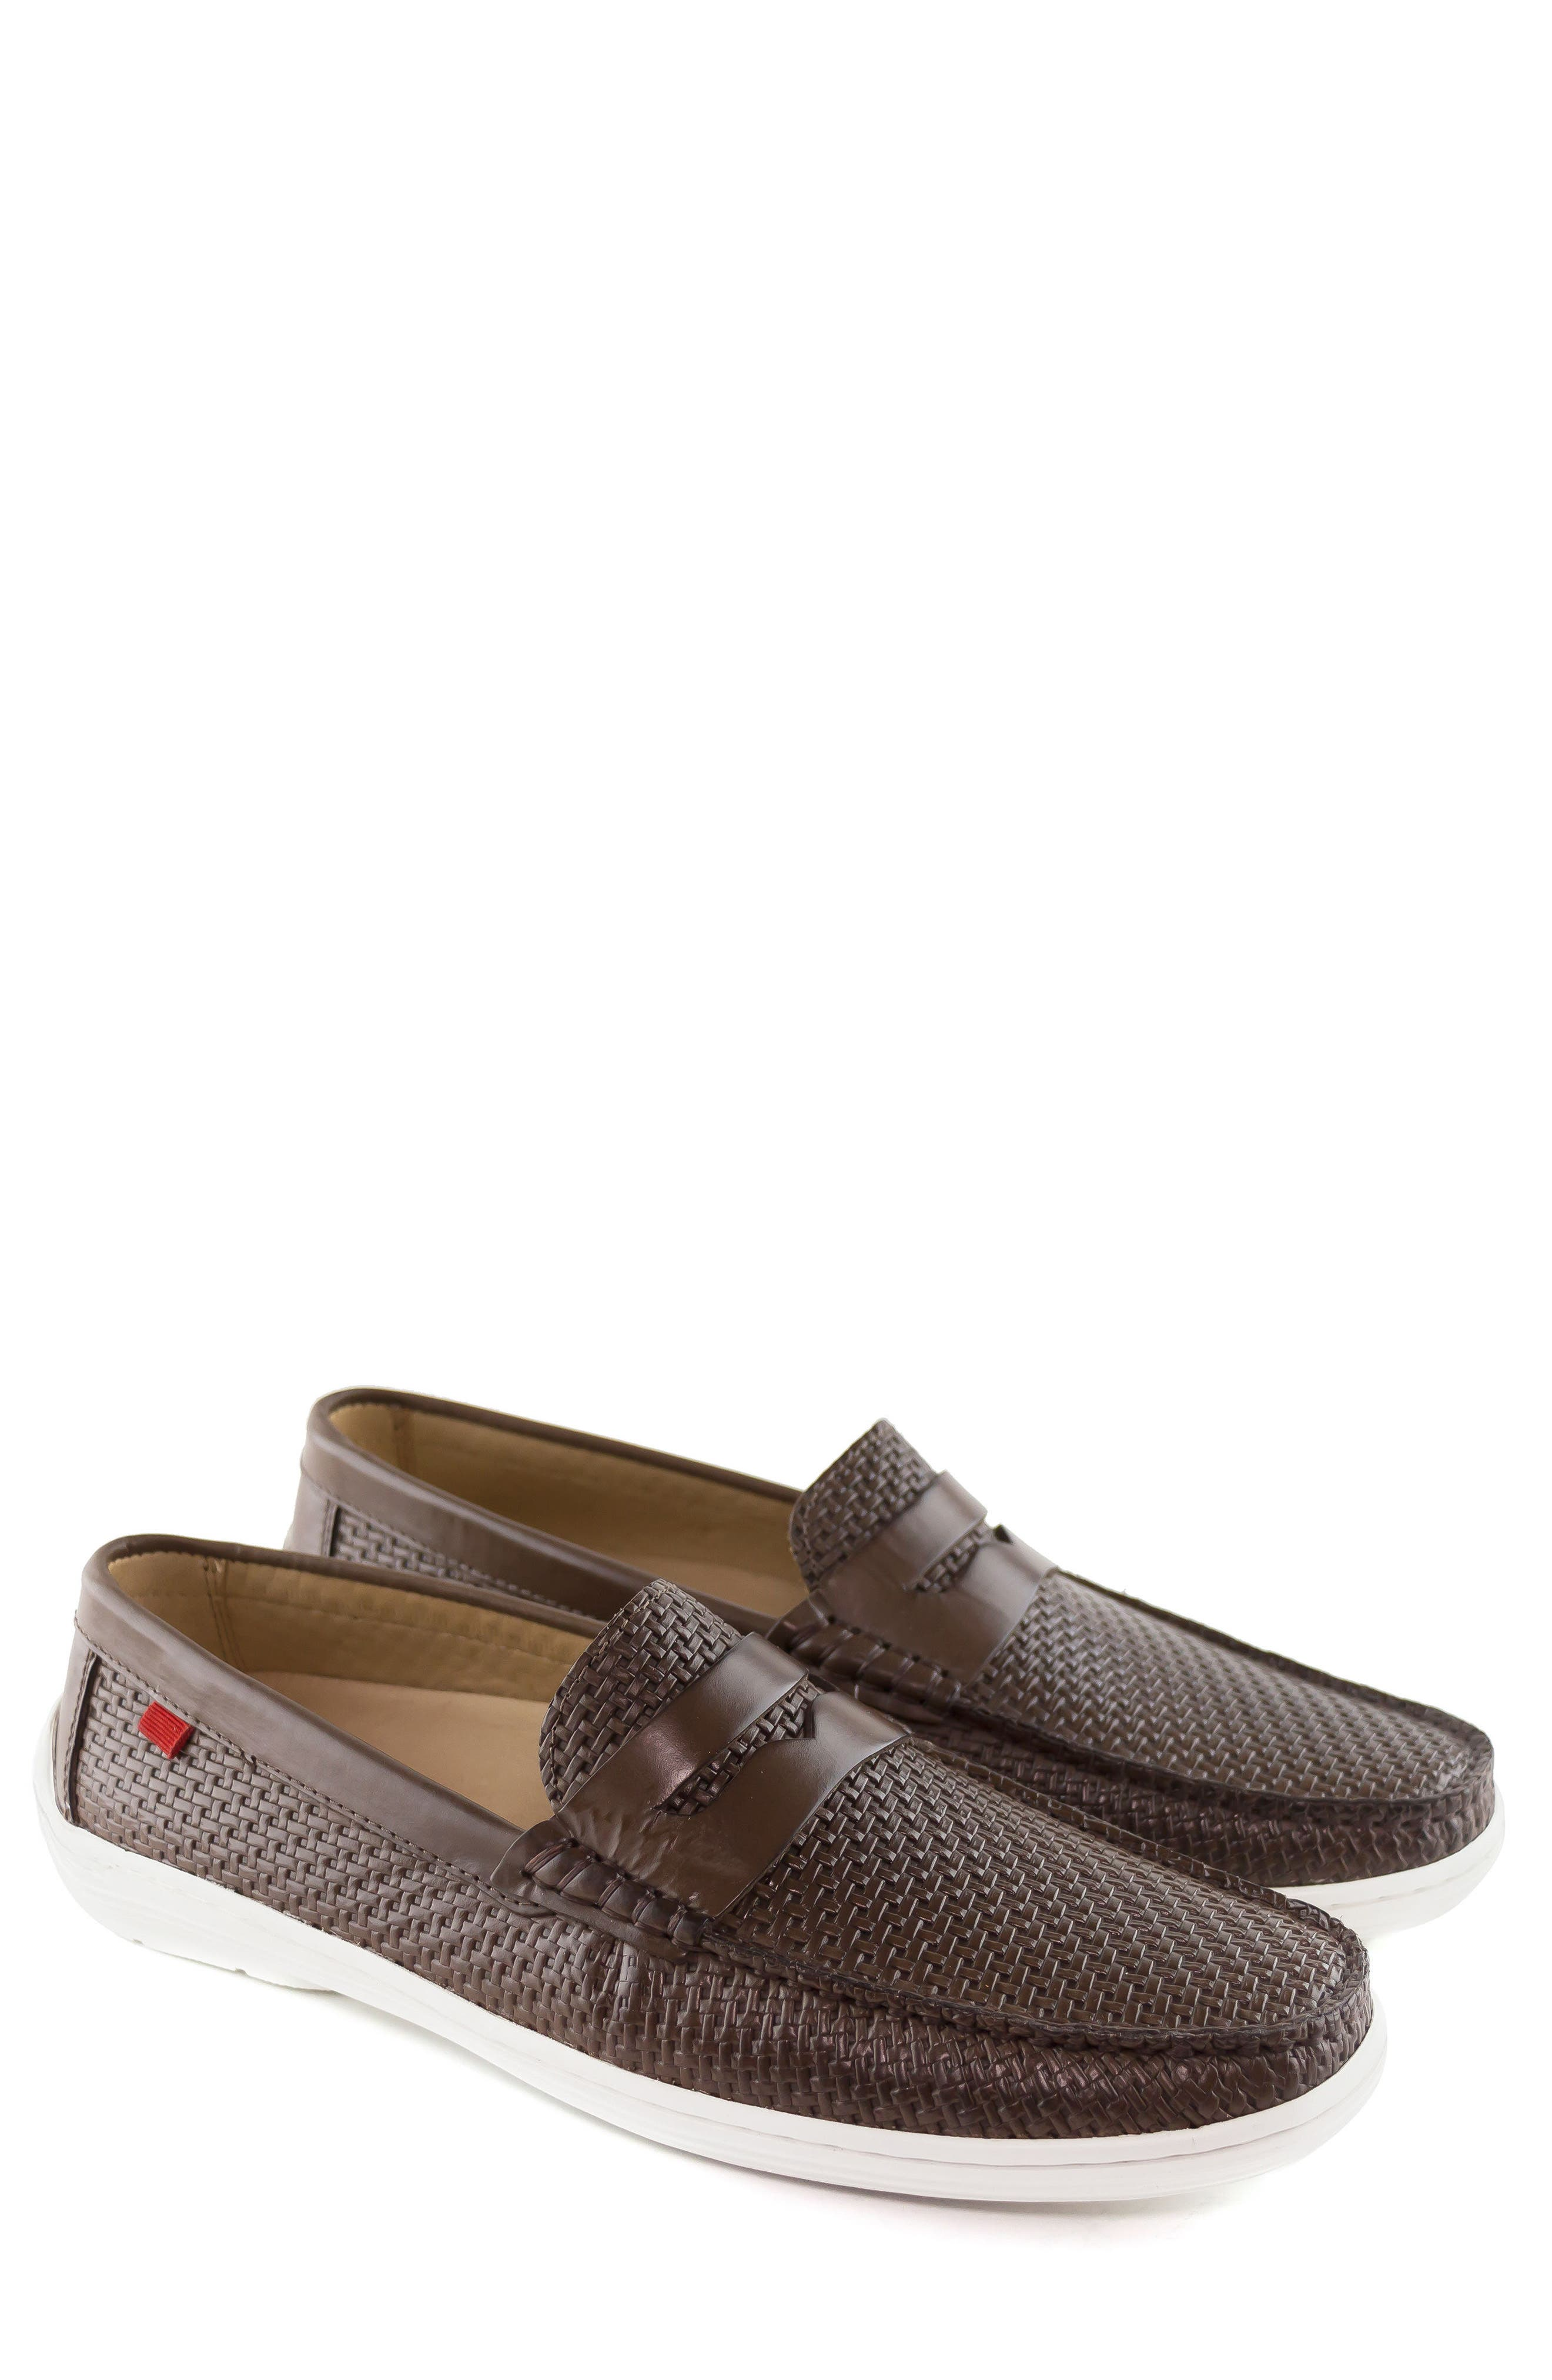 Atlantic Penny Loafer,                             Alternate thumbnail 45, color,